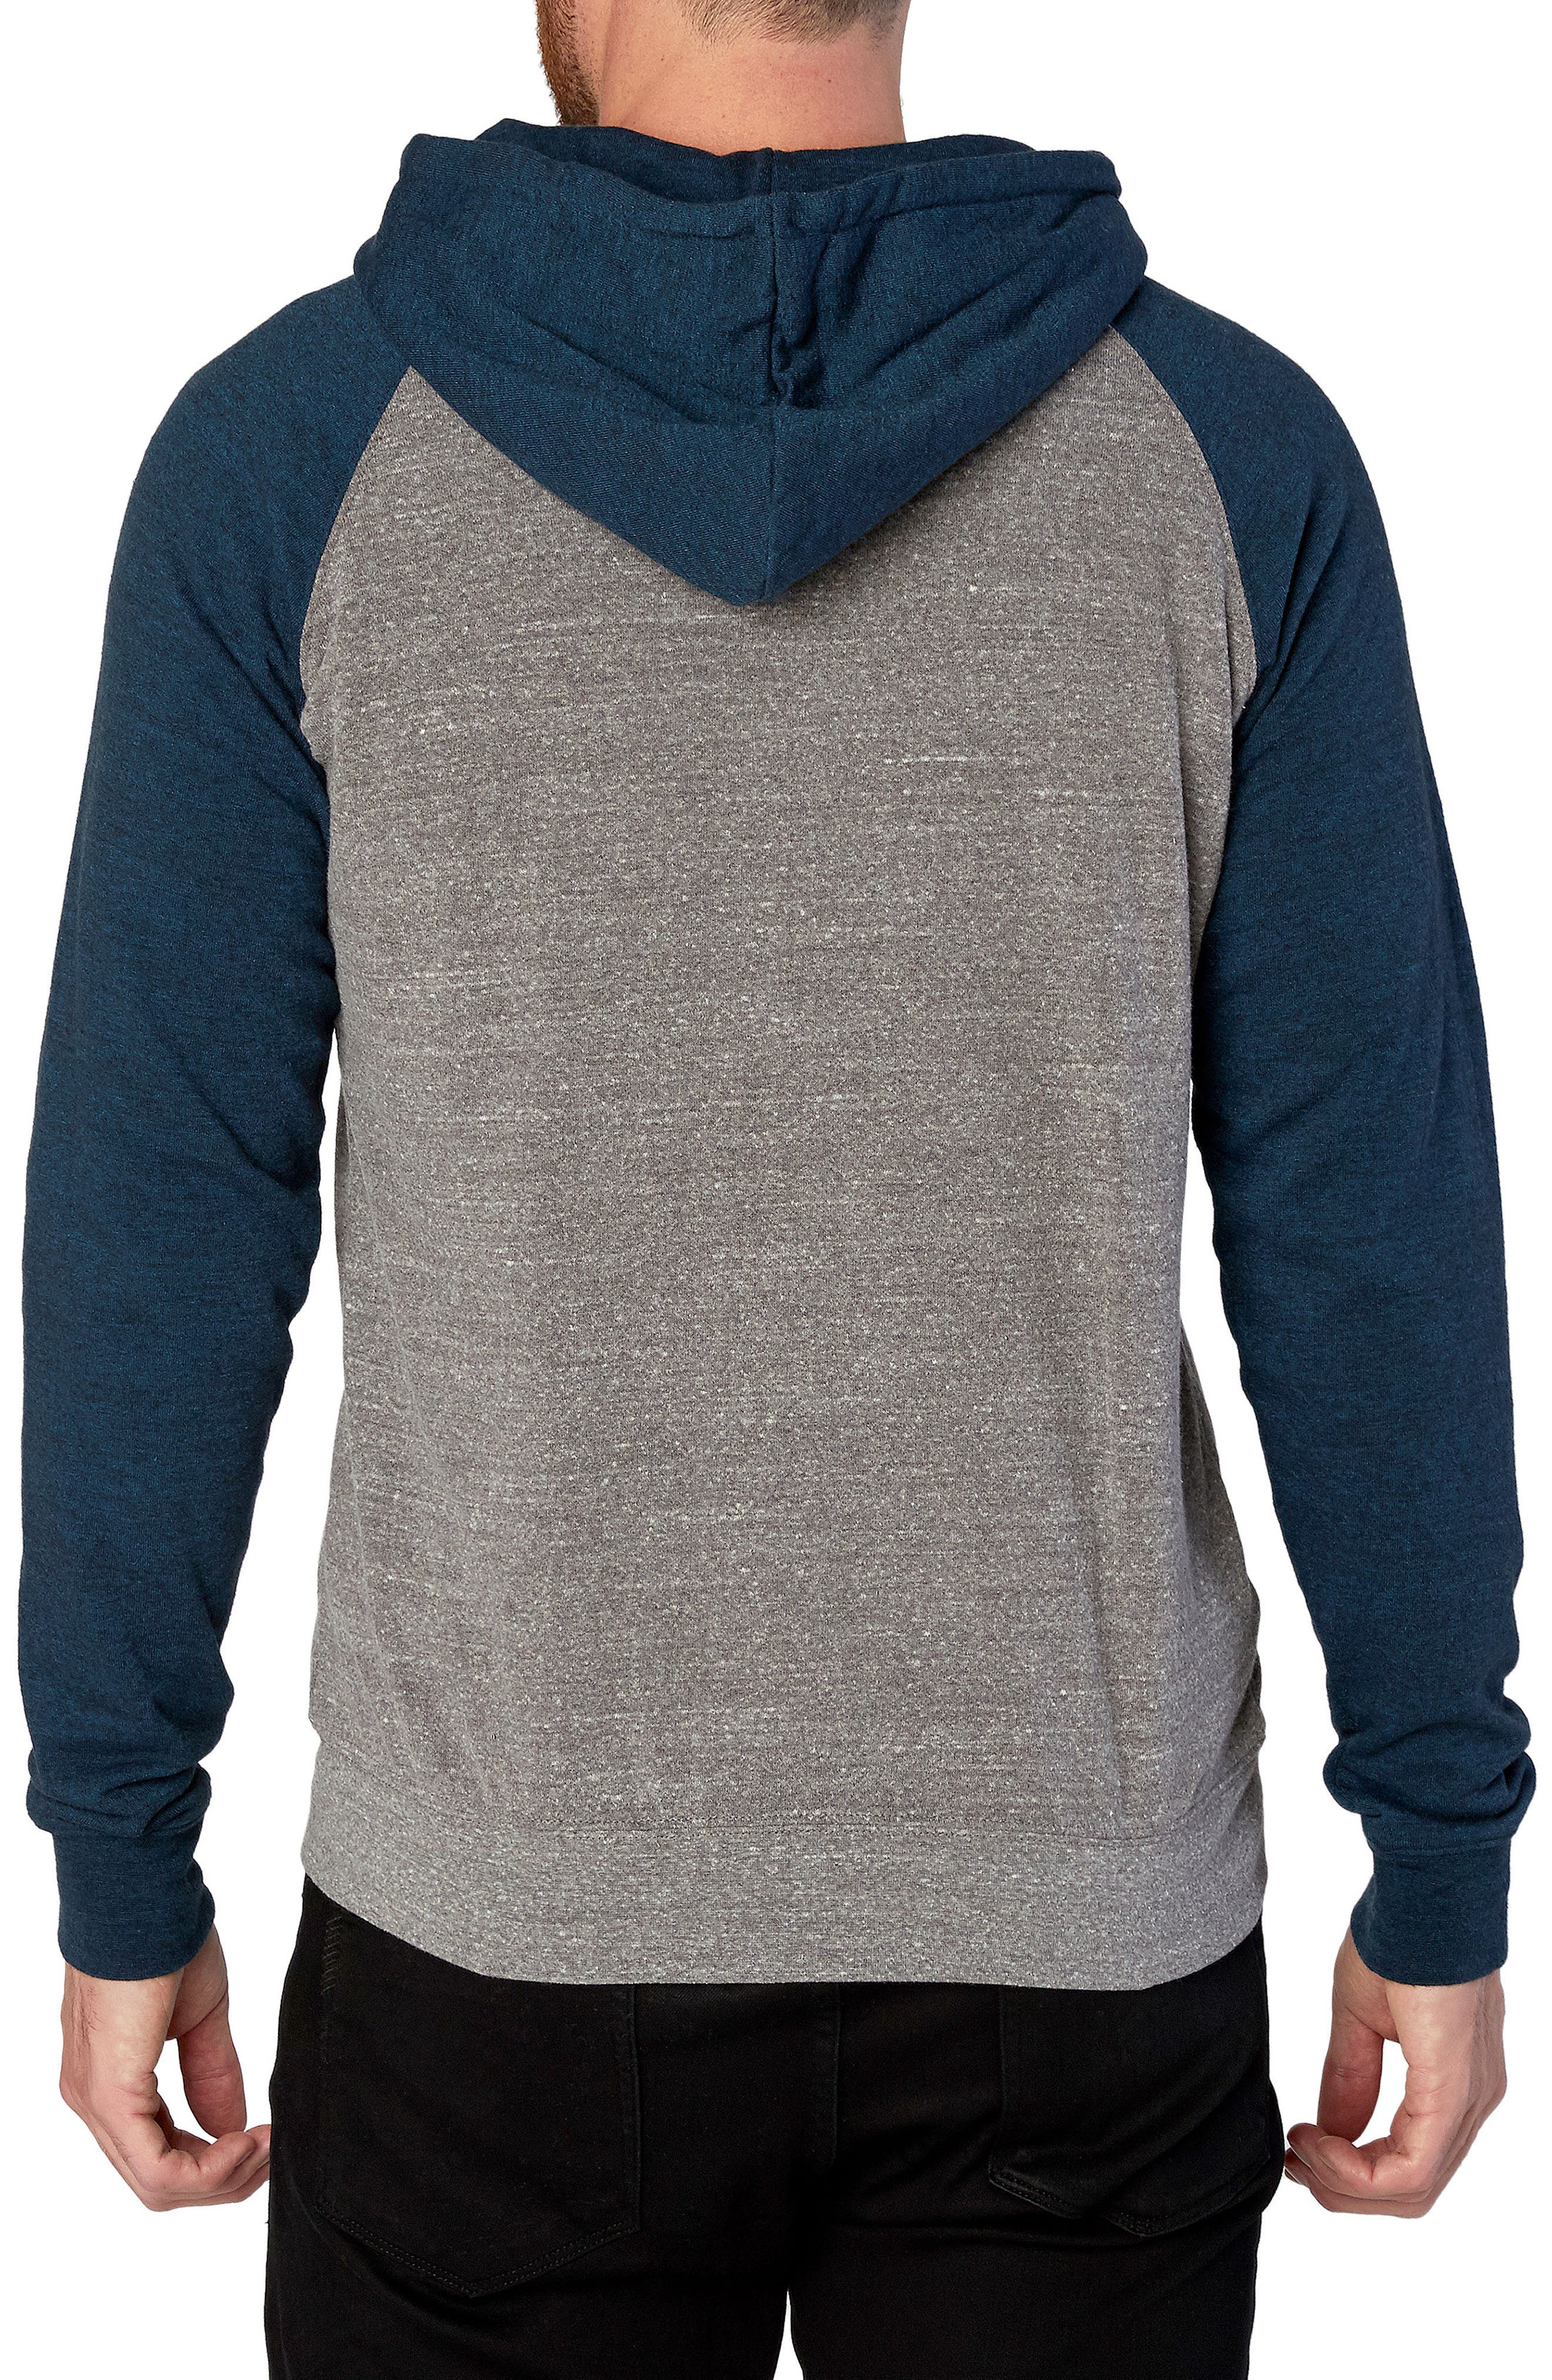 Threads for Thought Raglan Hoodie,                             Alternate thumbnail 2, color,                             Heather Grey/ Midnight